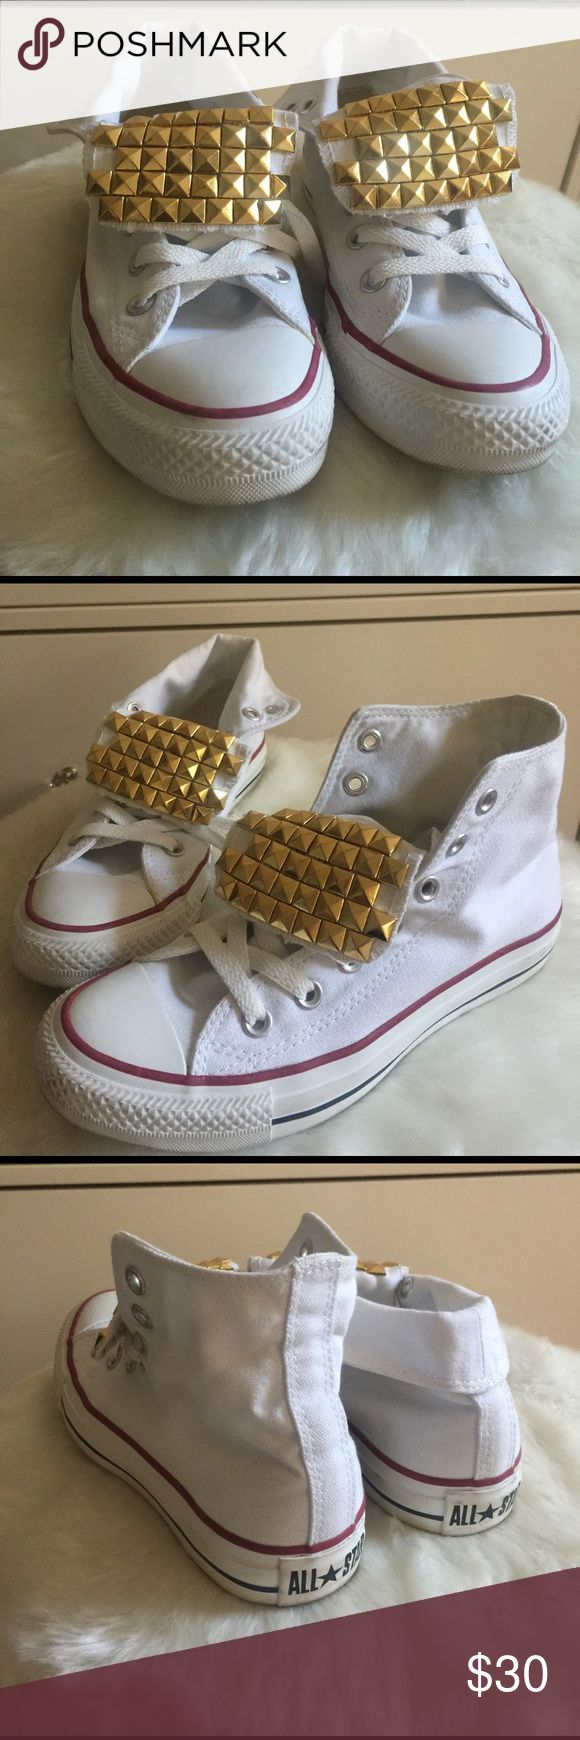 All Star Hi-top custom studded converse WORN ONCE! Cute & edgy pyramid studded converse can be worn as hi tops or folded. Converse Shoes Sneakers